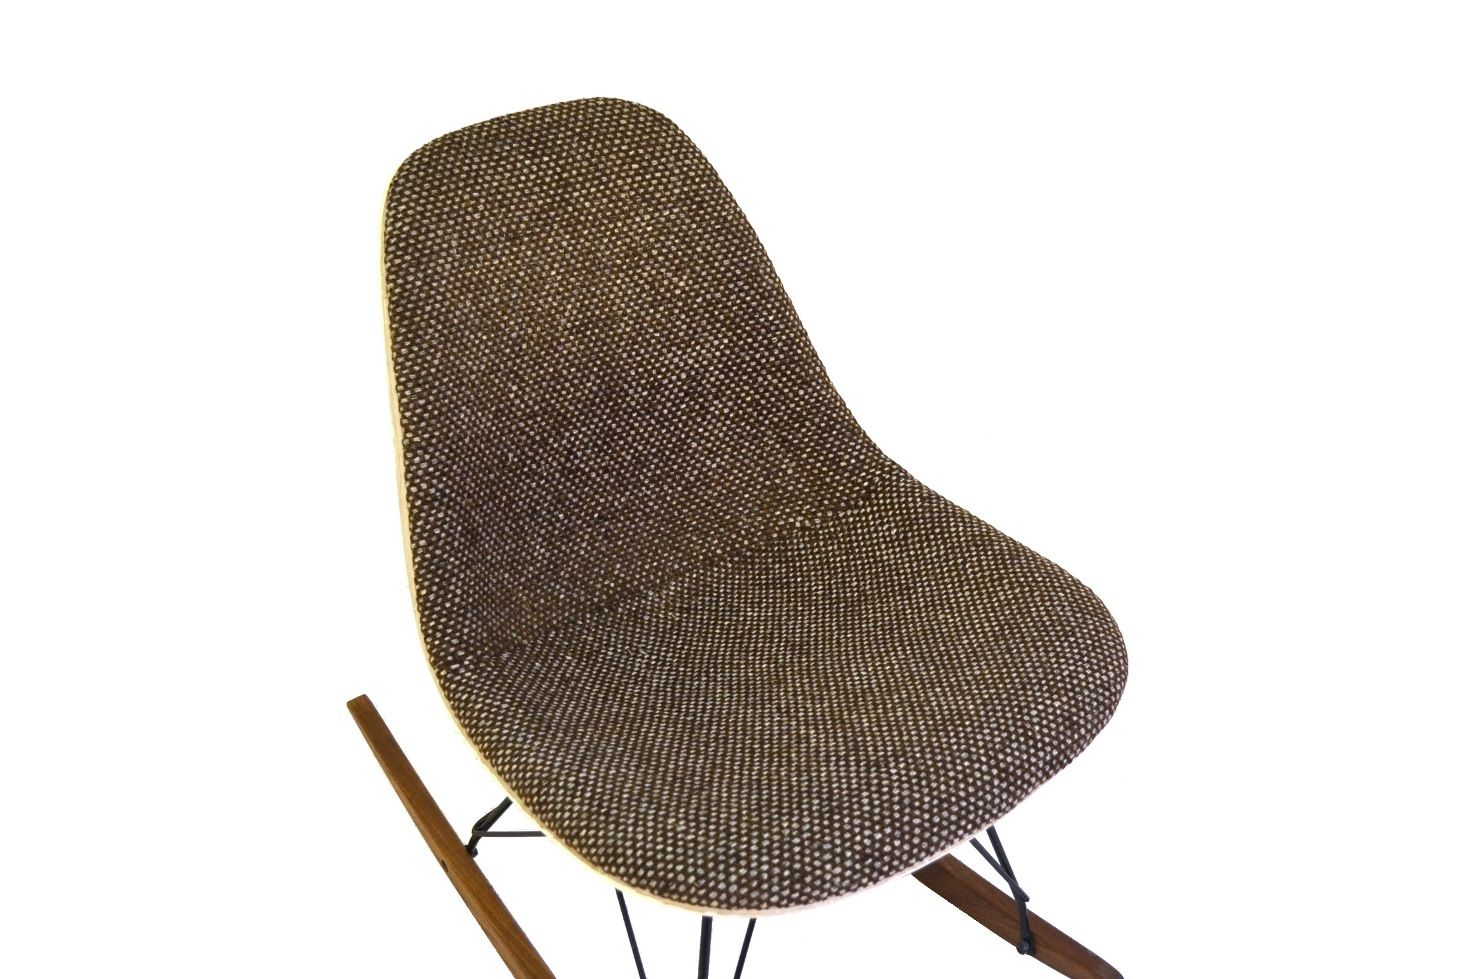 Rocking Chair By Charles Eames For Herman Miller 1948 For Sale At Pamono